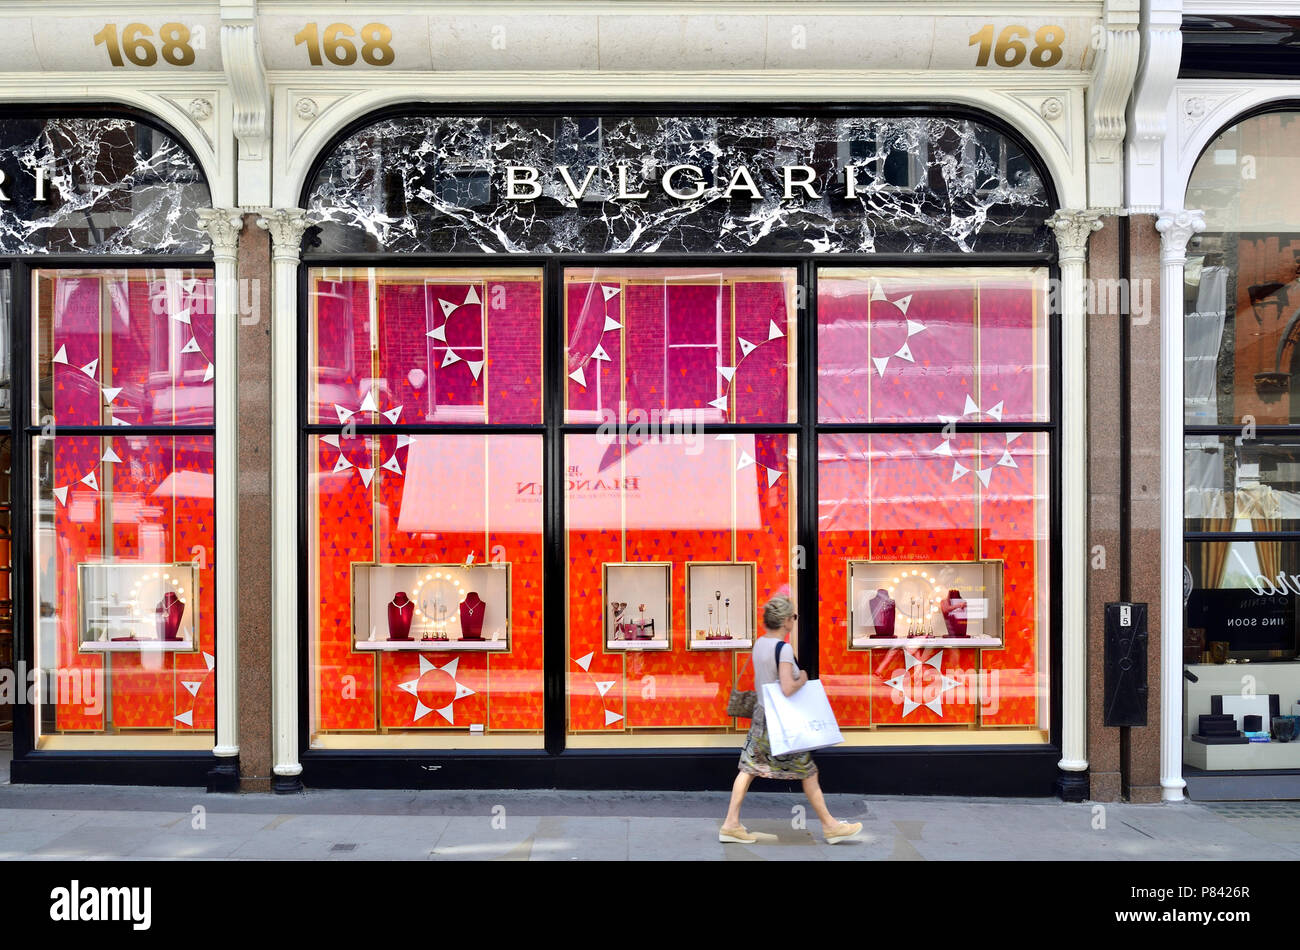 London Jewelry Uk Immagini & London Jewelry Uk Fotos Stock - Alamy